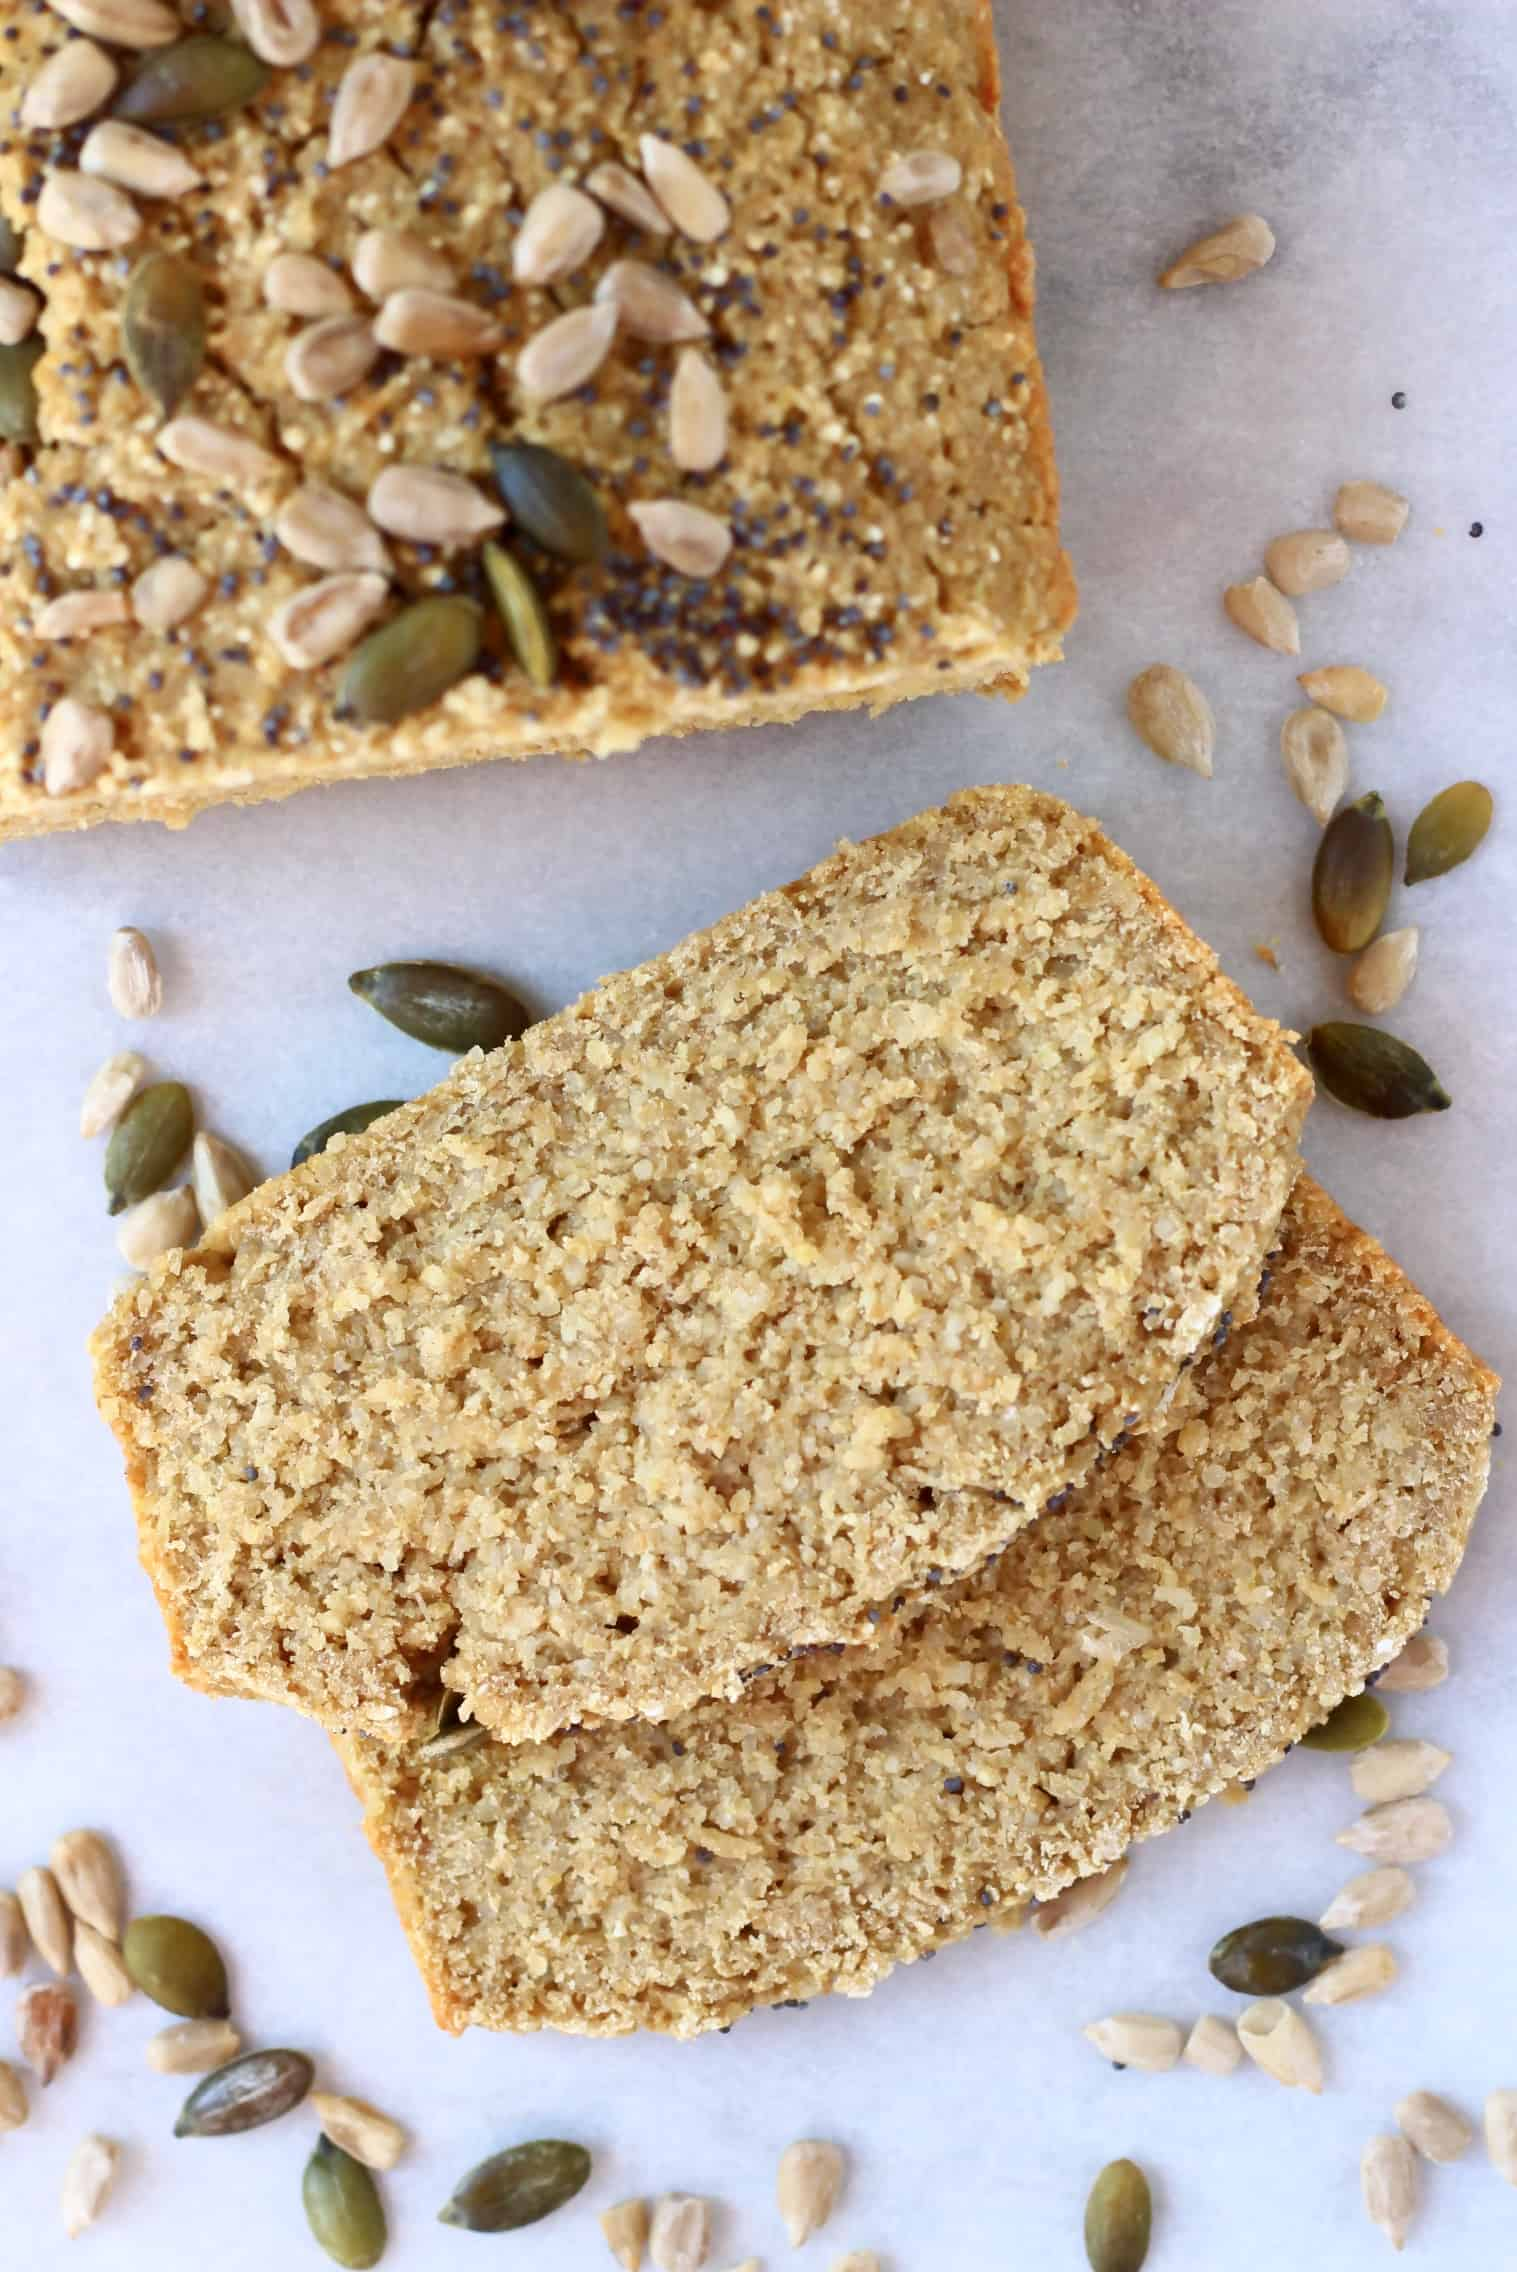 A loaf of quinoa bread topped with seeds with two slices next to it